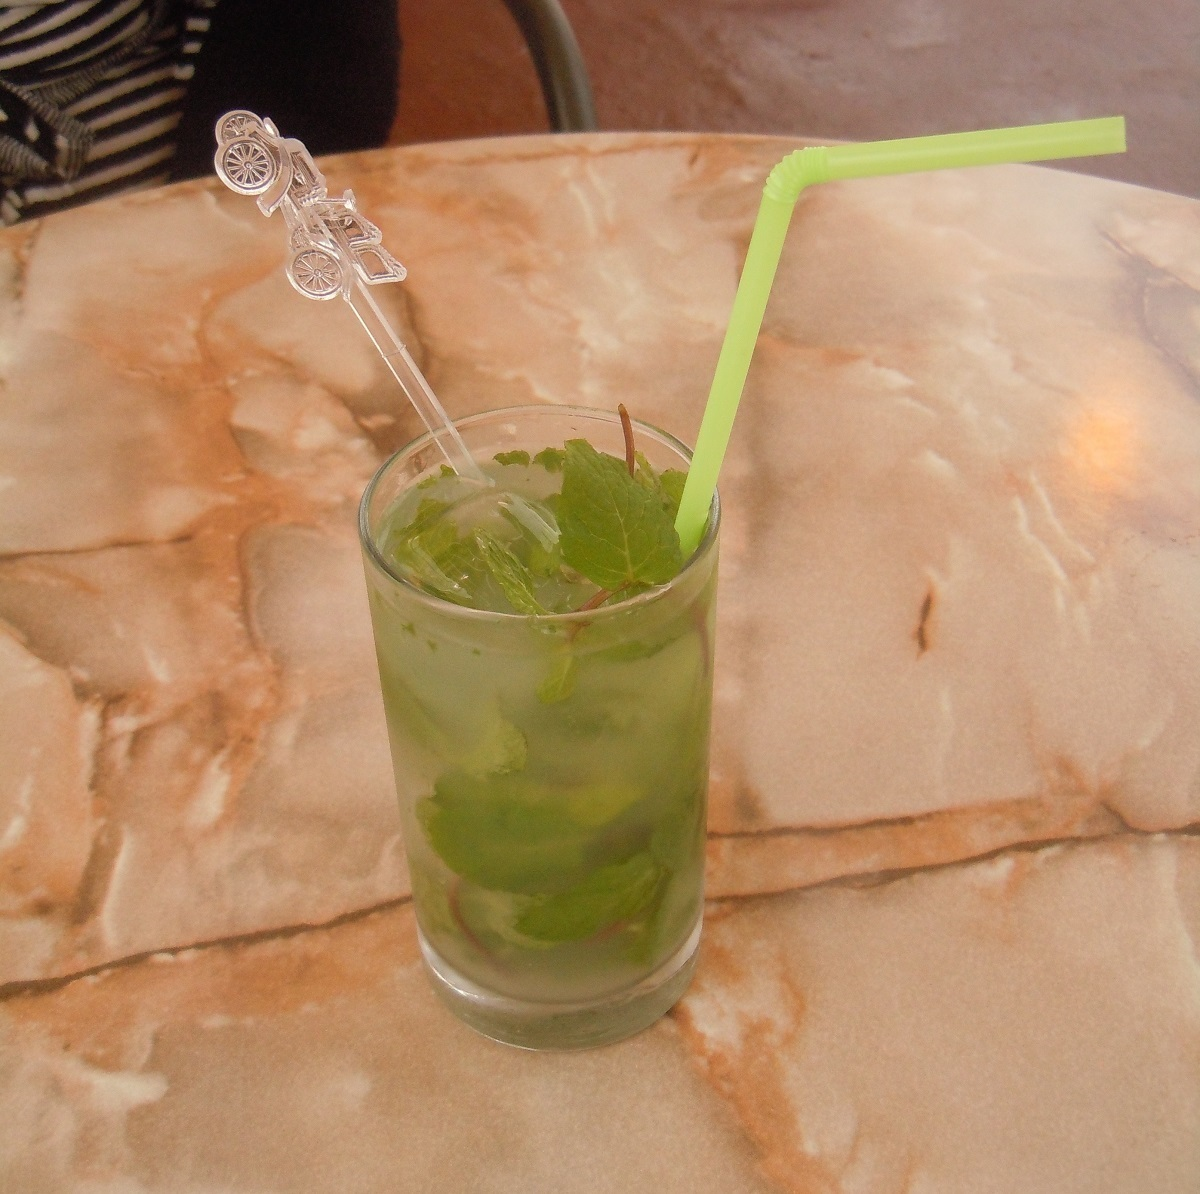 The Mojito, a highball drink still popular in Cuba, is made of white rum, sugar cane juice, lime juice and sparkling water. Essential on the to-do list when you're visiting Cuba. (Photo by Meg Maguire.)